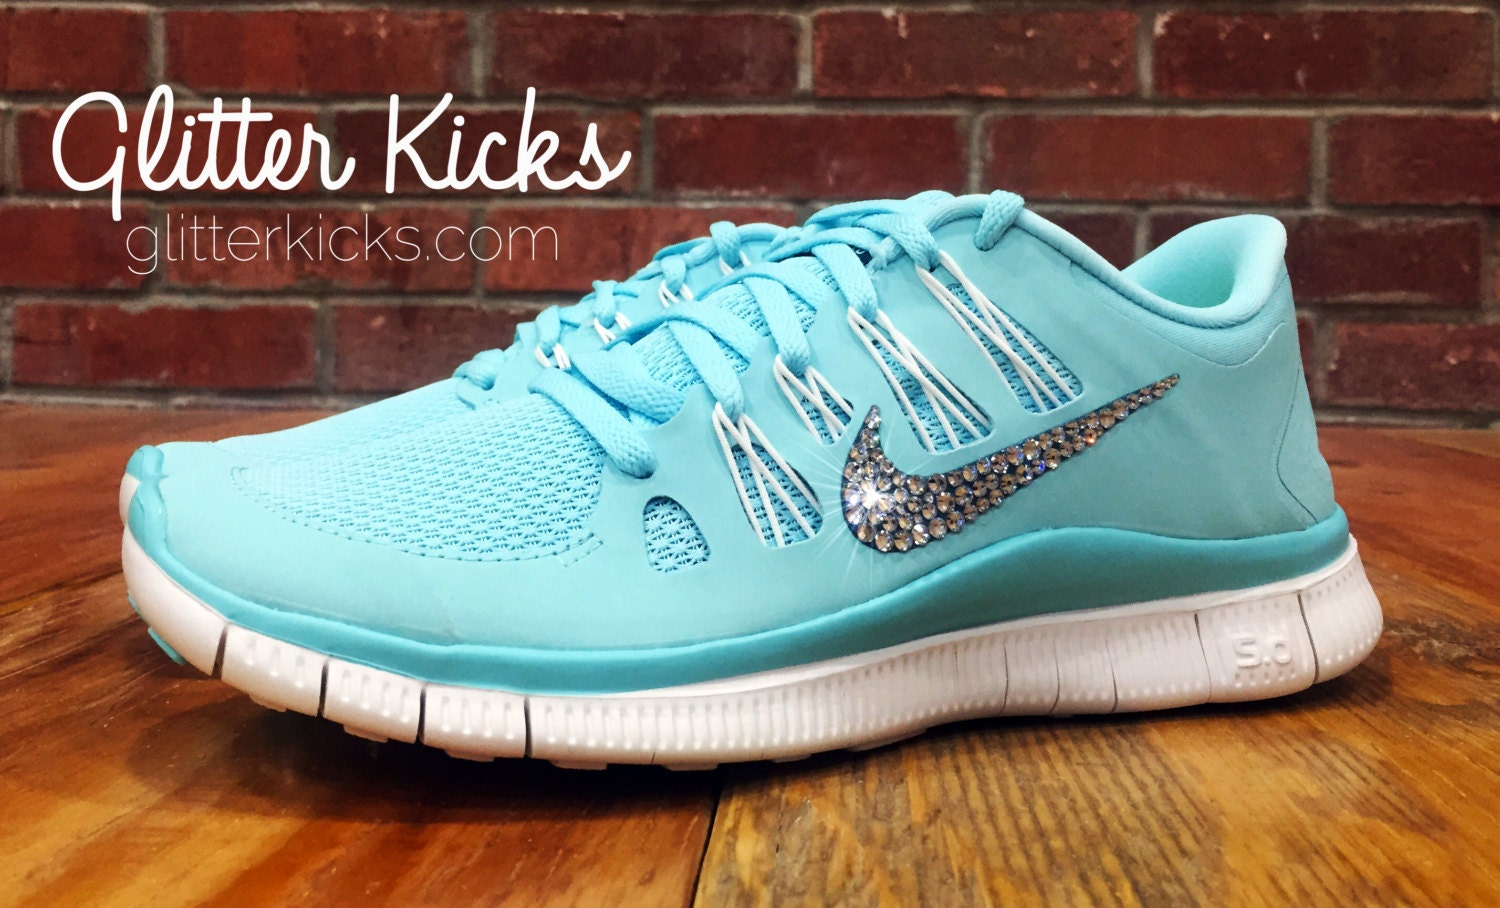 8dfa2f1e6dbea BLING NIKE FREE RUN 5.0 TIFFANY BLUE BLINGED OUT SHOES - GLITTER KICKS  BLING NIKES WITH SWAROVSKI CRYSTAL RHINESTONES BLINGED SHOES on The Hunt